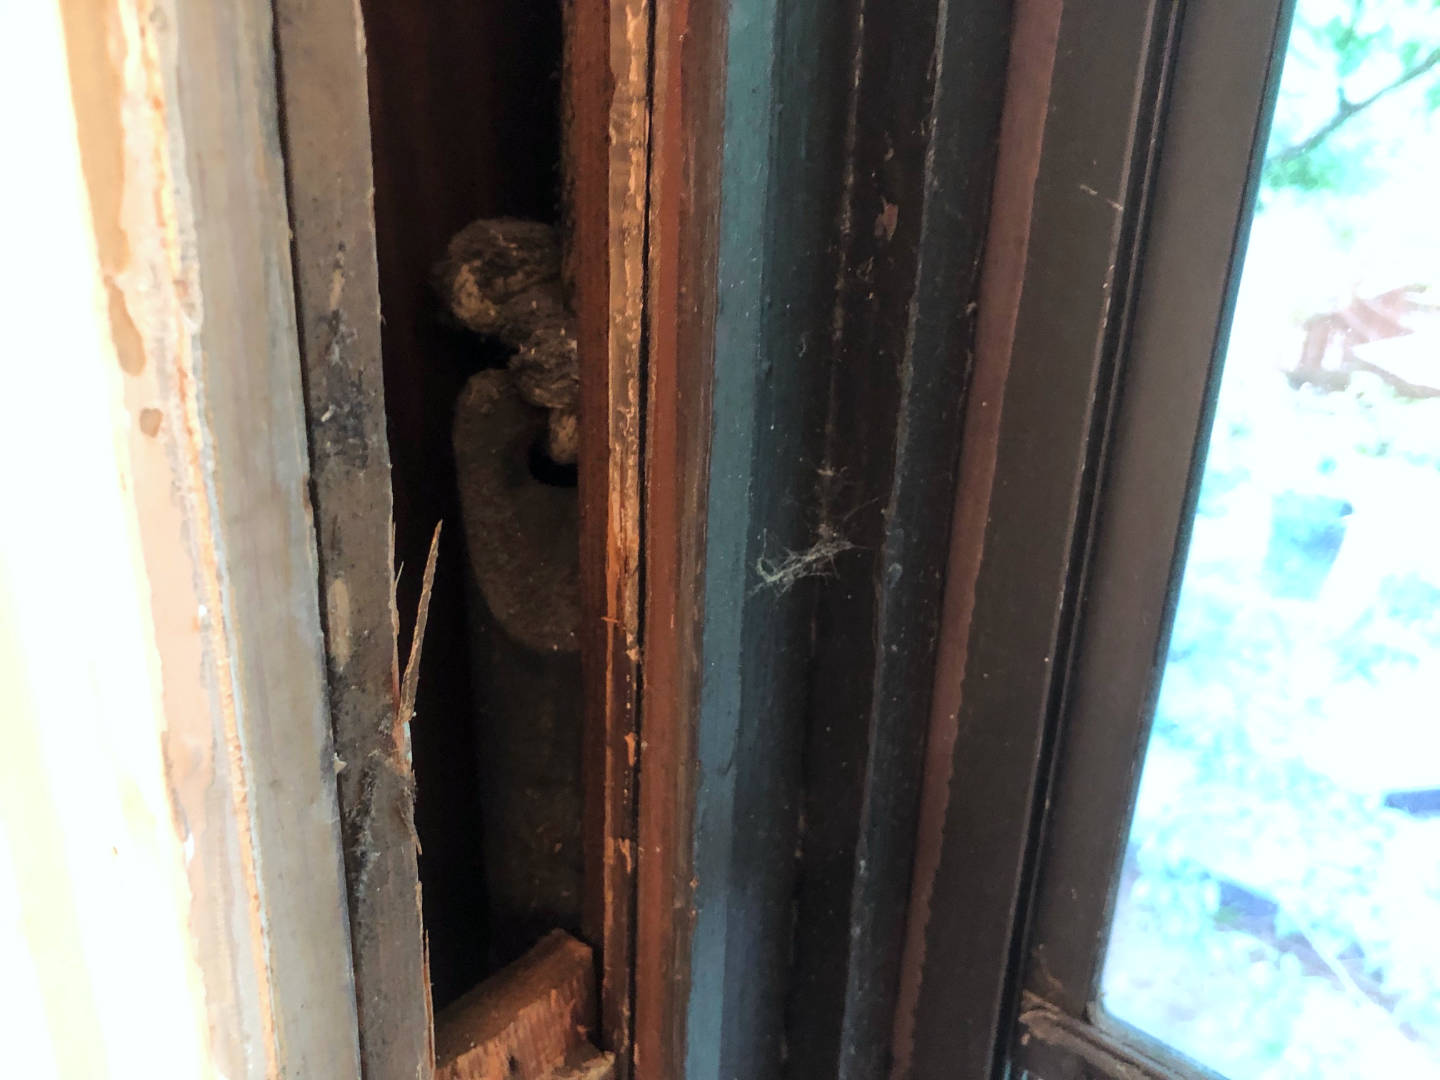 This is the hidden pocket inside a window frame where the window weight resides along with the broken sash cord which we're replacing!